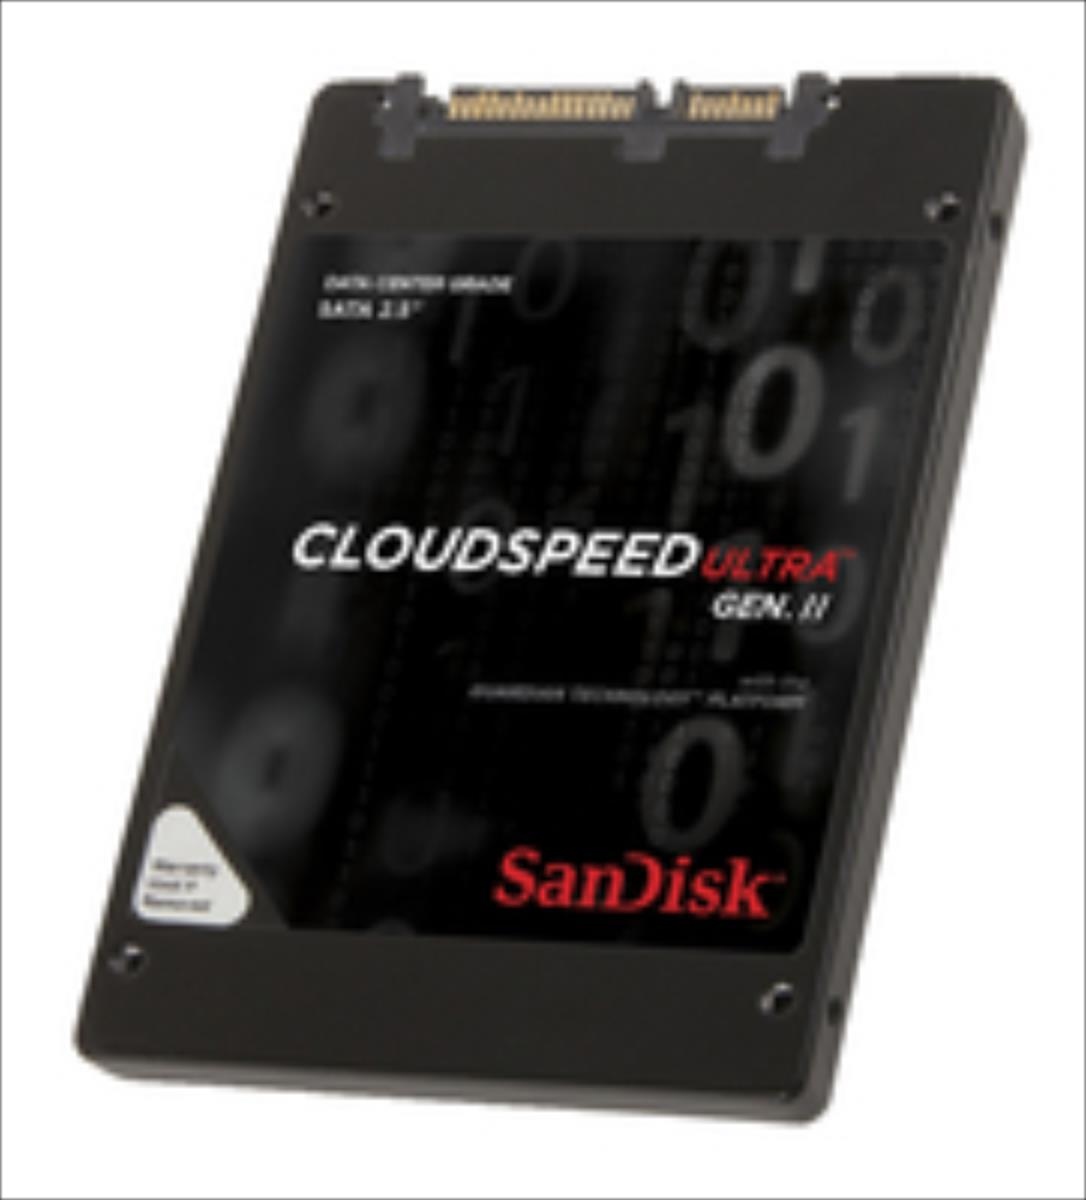 SanDisk CloudSpeed Ultra  Gen. II 400GB SATA3 (SDLF1DAM-400G-1HA1) SSD disks